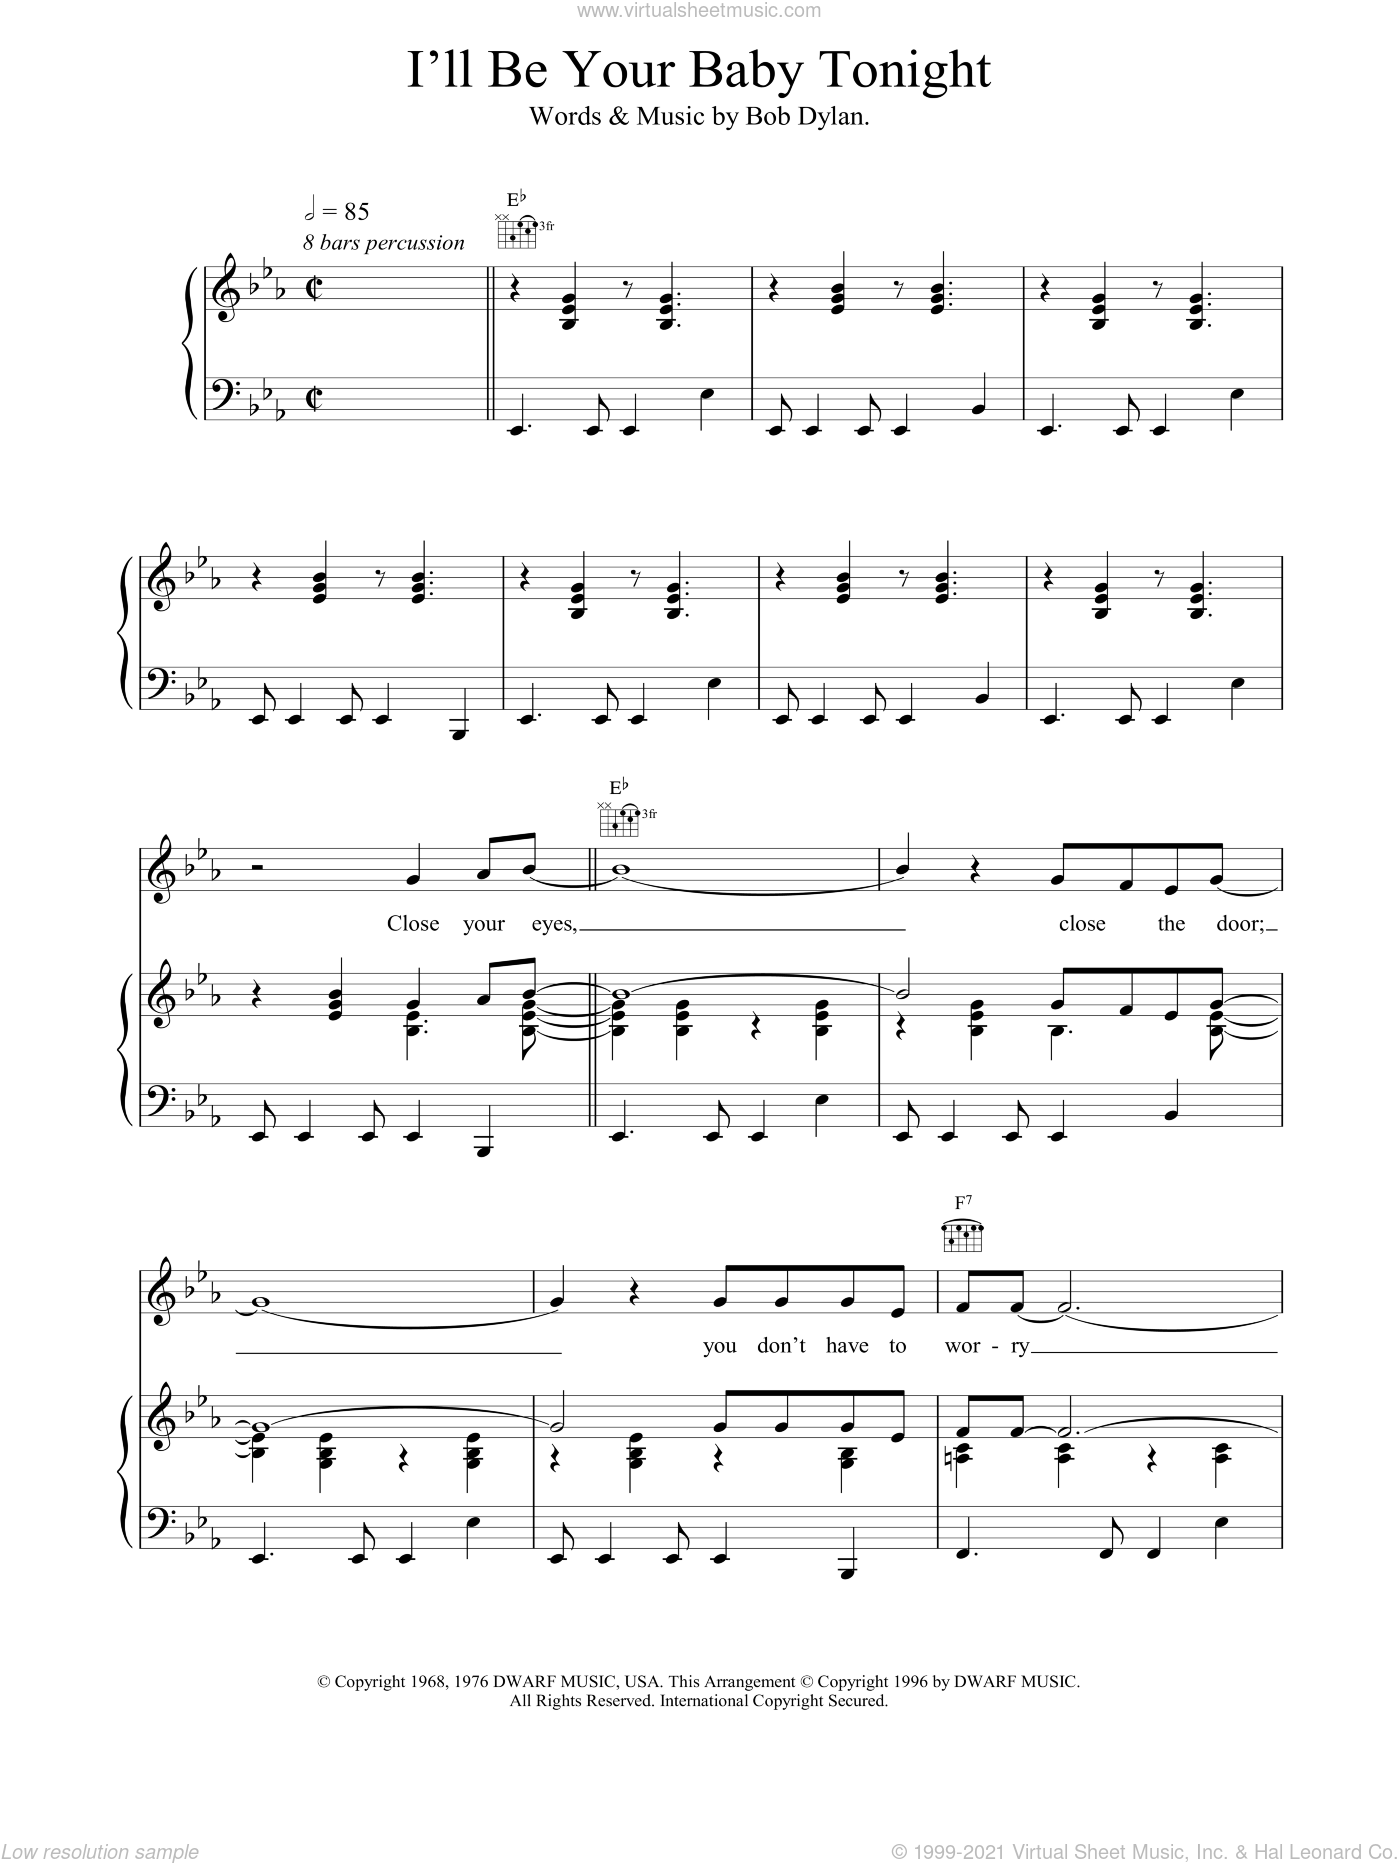 I'll Be Your Baby Tonight sheet music for voice, piano or guitar by Bob Dylan, Robert Palmer and UB40, intermediate skill level